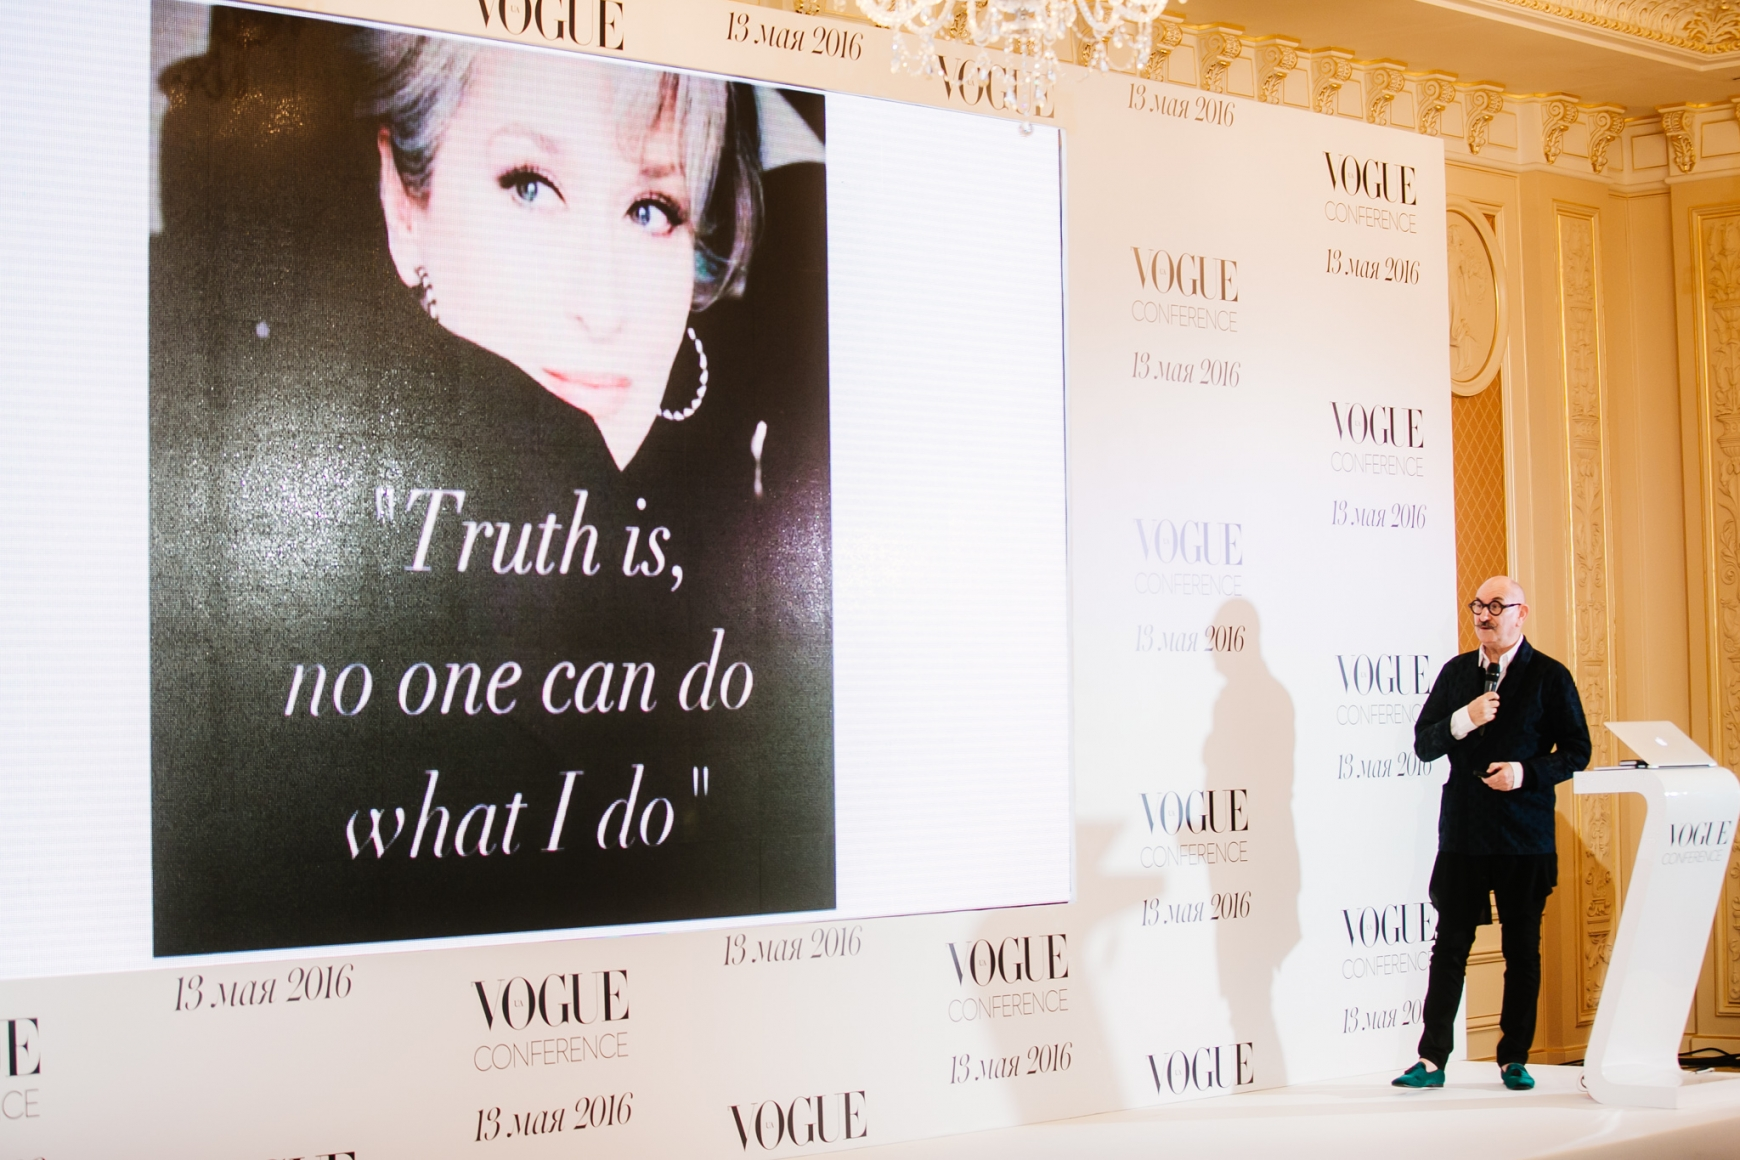 Tony Glenville speaks at the Vogue Ukraine conference